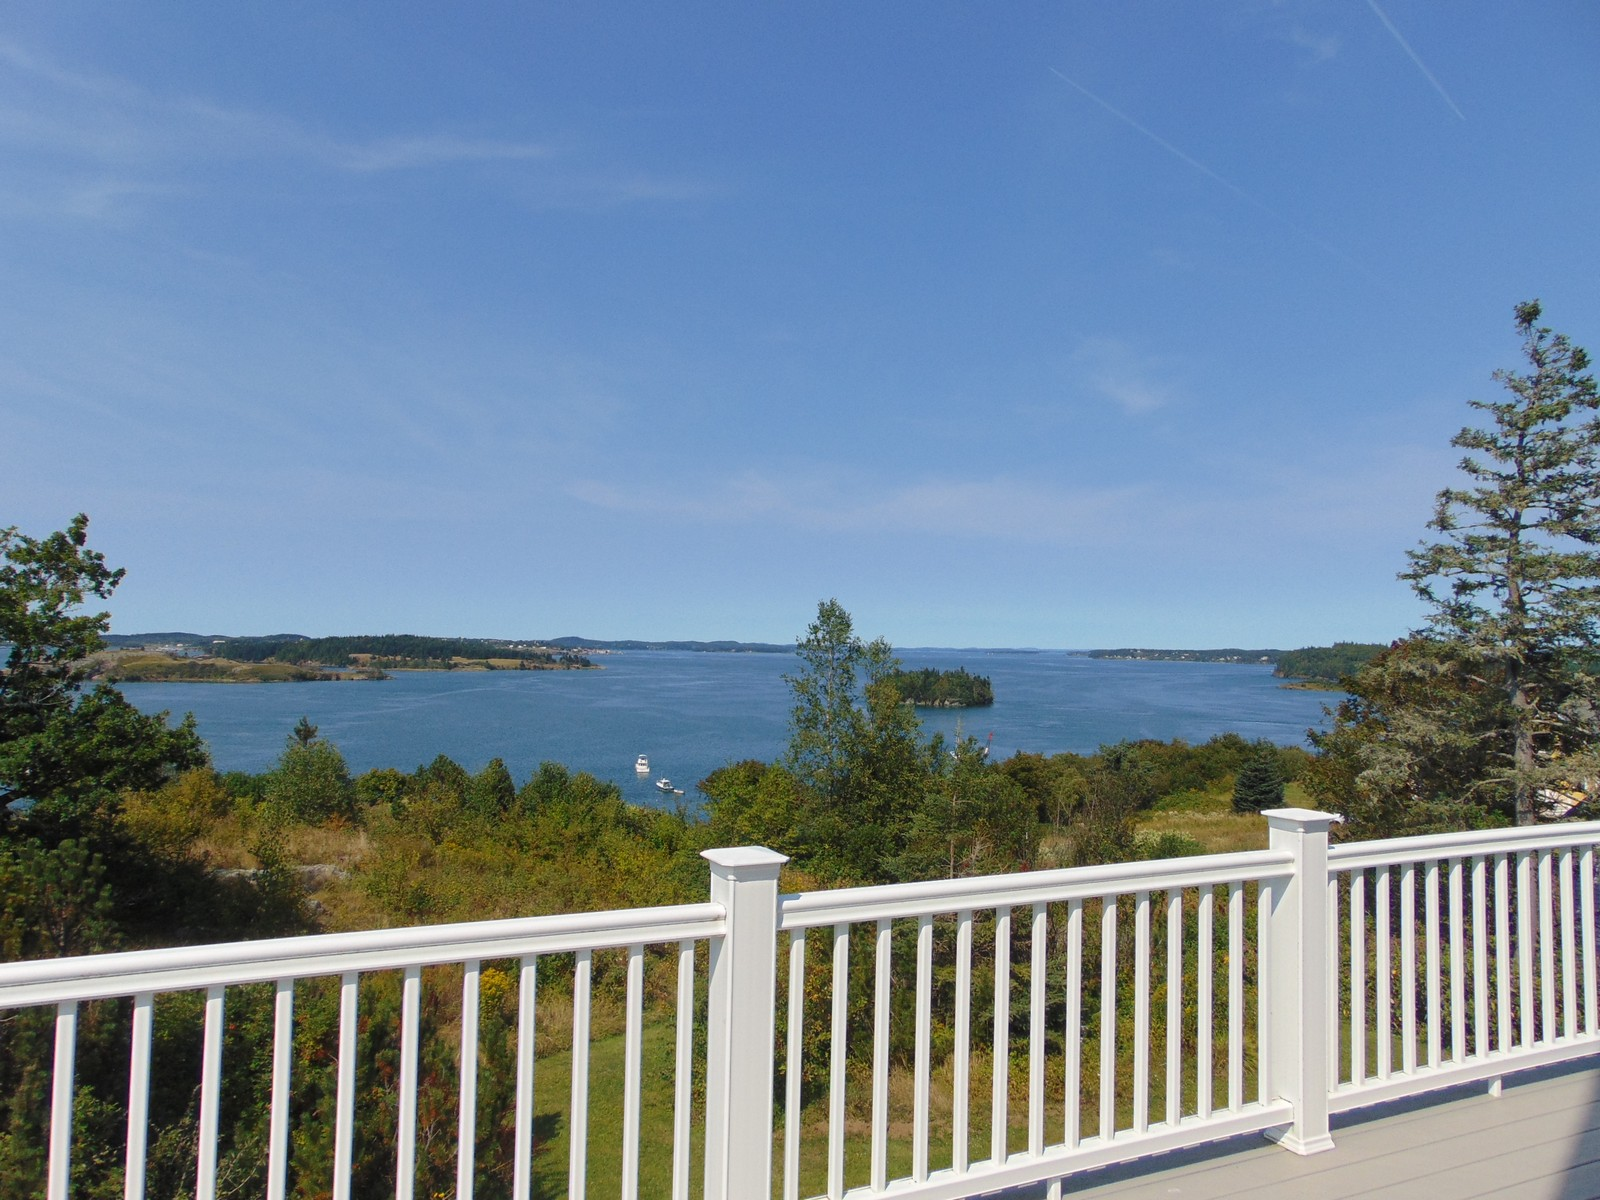 Single Family Home for Sale at Main Street 35 Main Street Lubec, Maine, 04652 United States